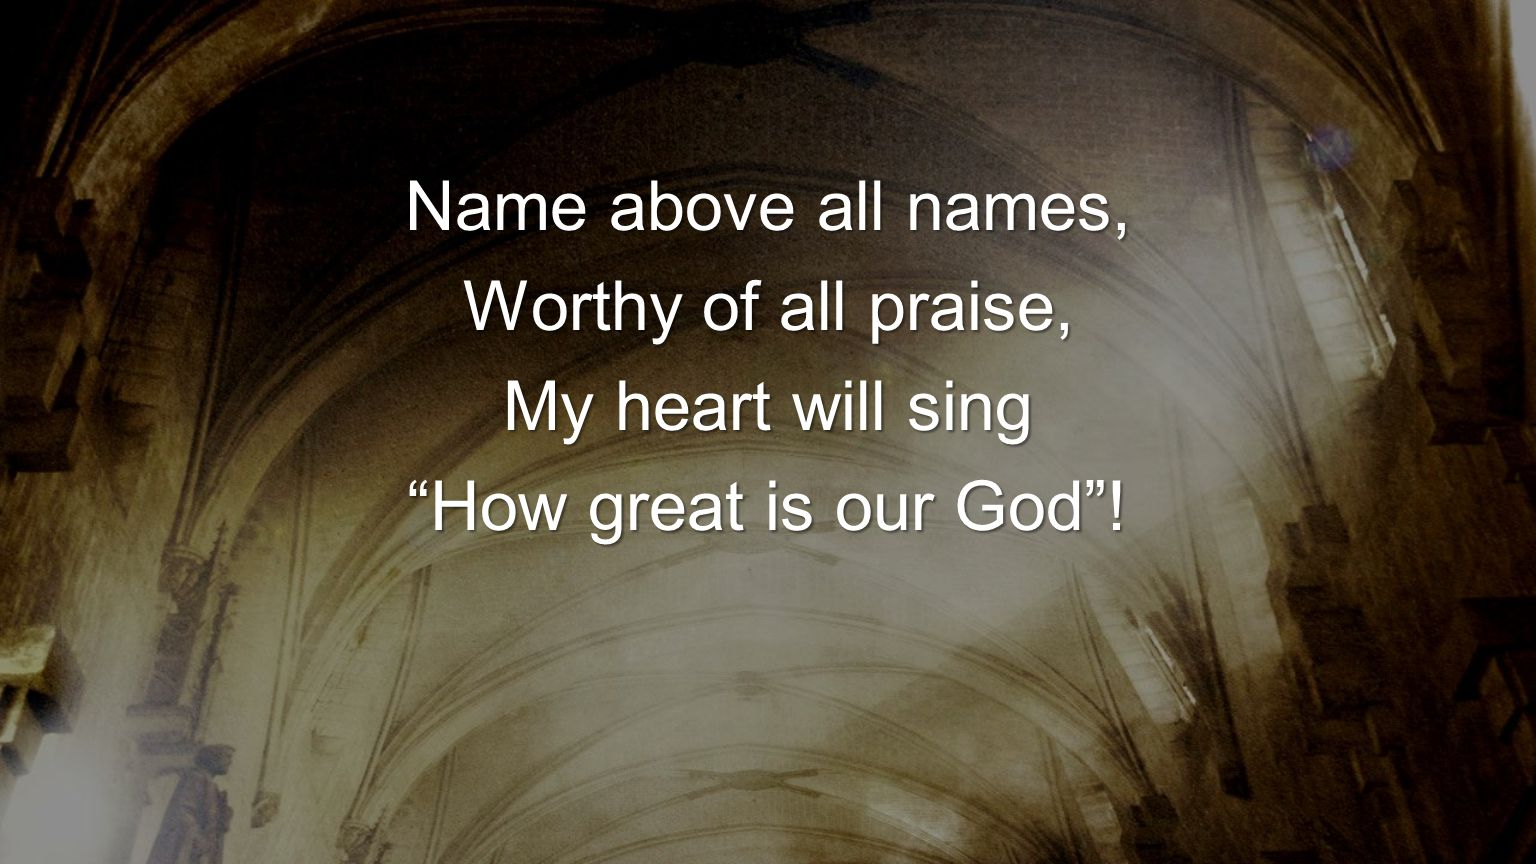 Name above all names, Worthy of all praise, My heart will sing How great is our God !